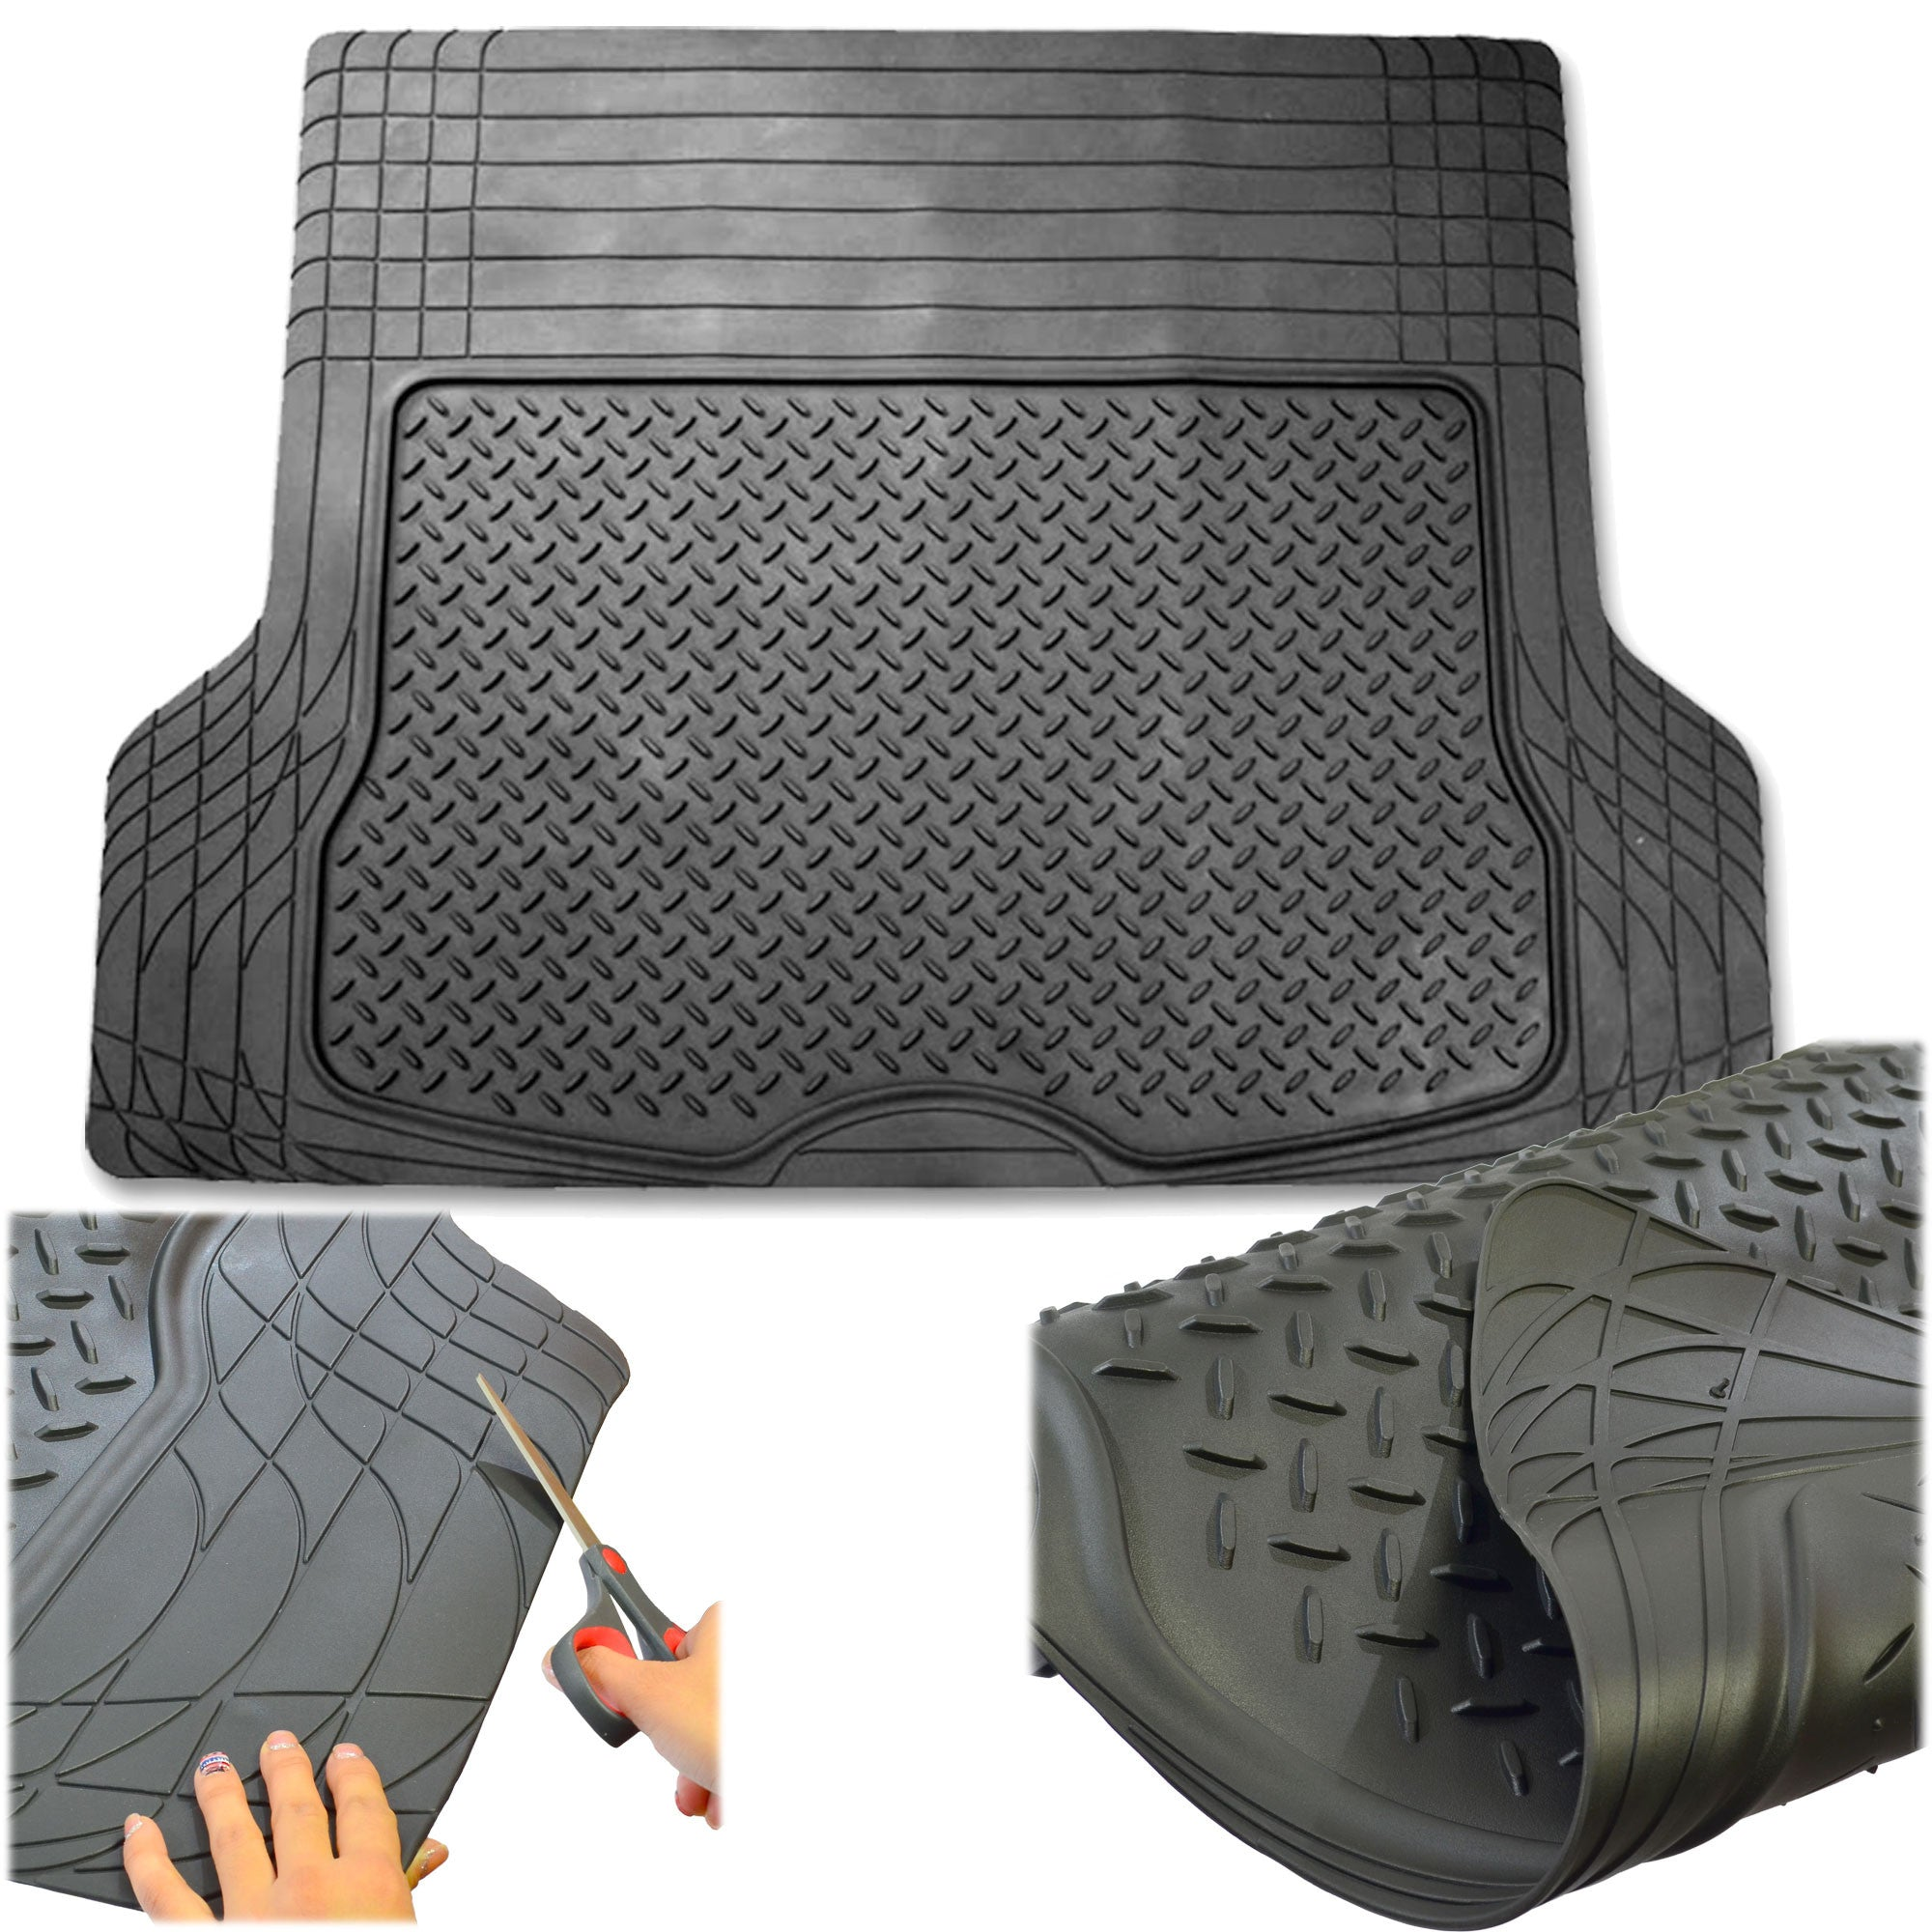 bestfh suv floor for red product with car black covers beige mats auto shop seat carpet